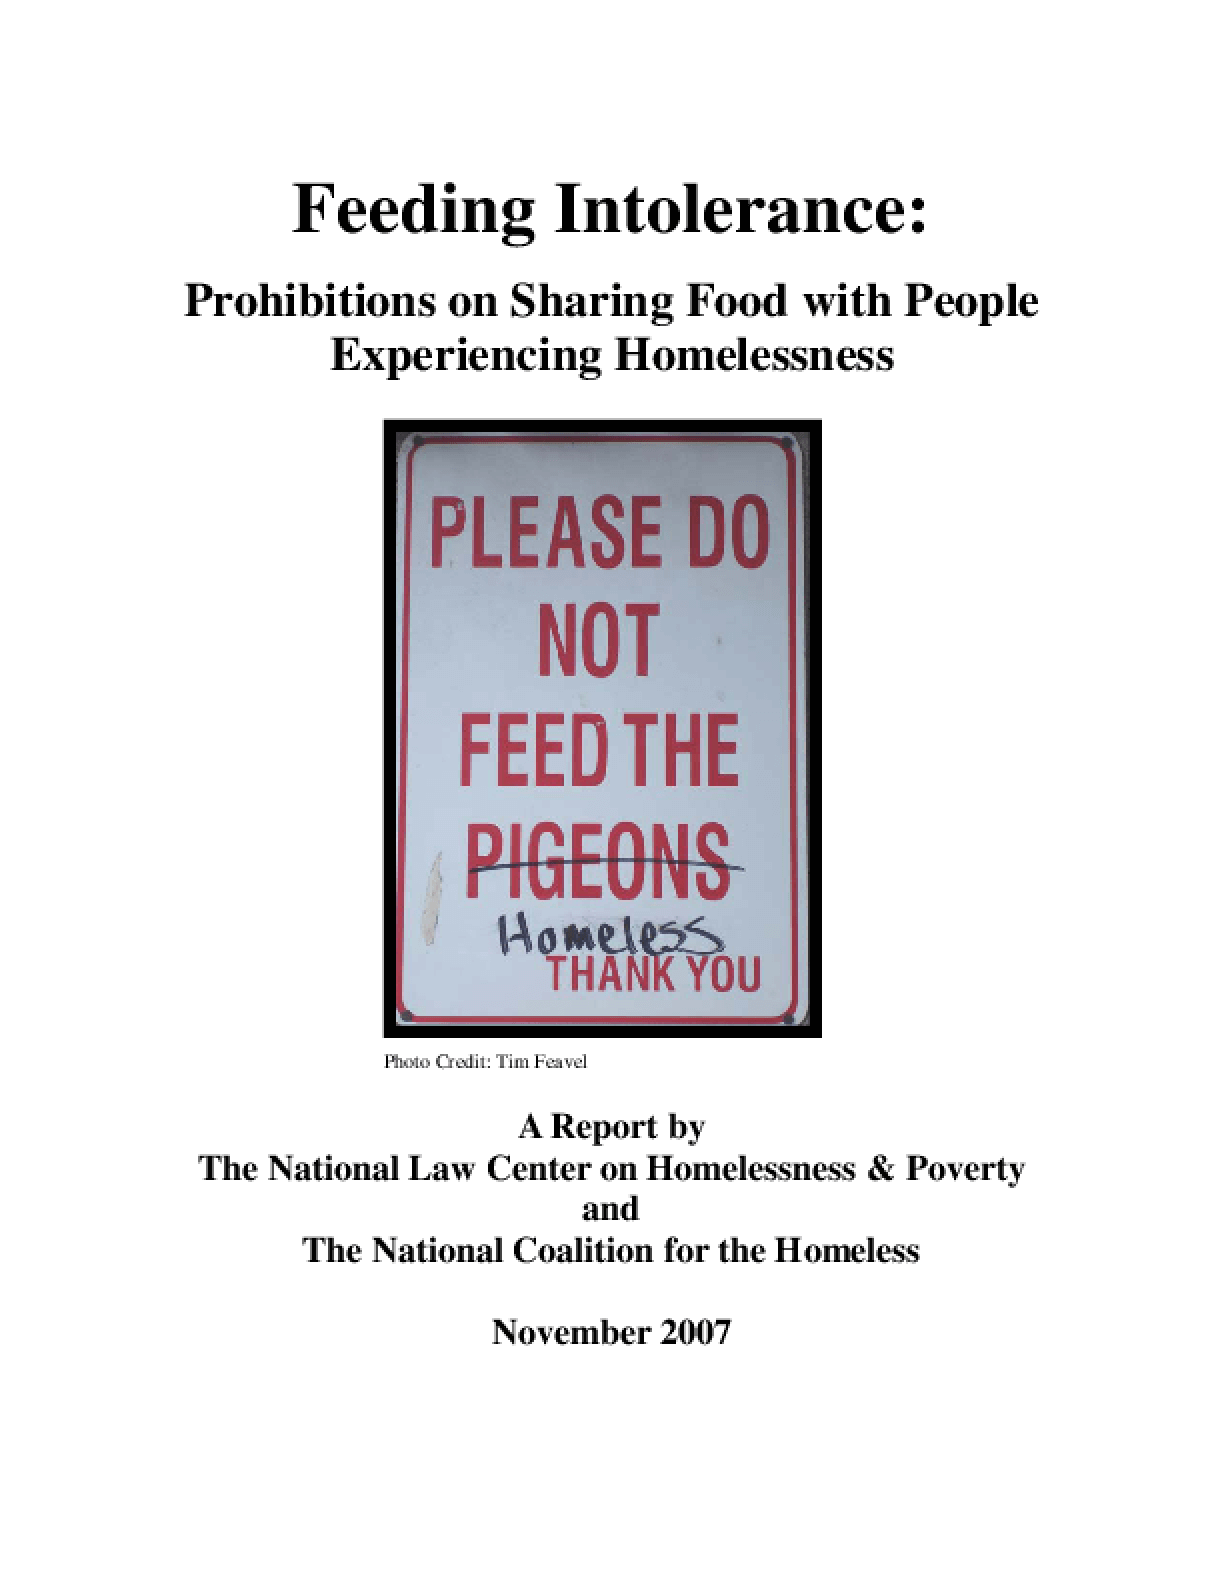 Feeding Intolerance: Prohibitions on Sharing Food with People Experiencing Homelessness